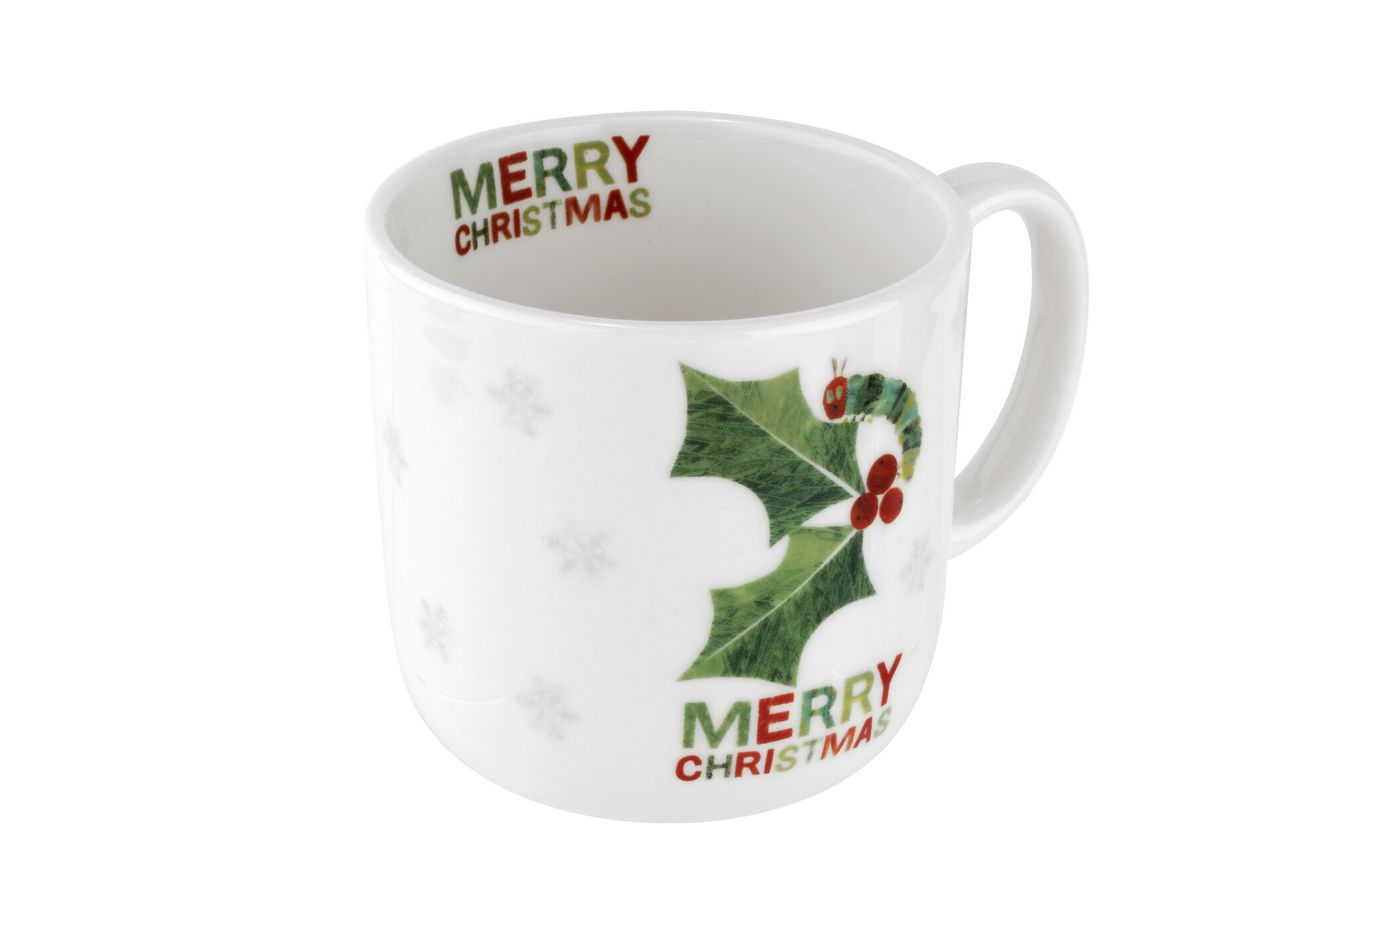 Portmeirion The Very Hungry Caterpillar by Eric Carle Mug Merry Christmas 0.22l thumb 2